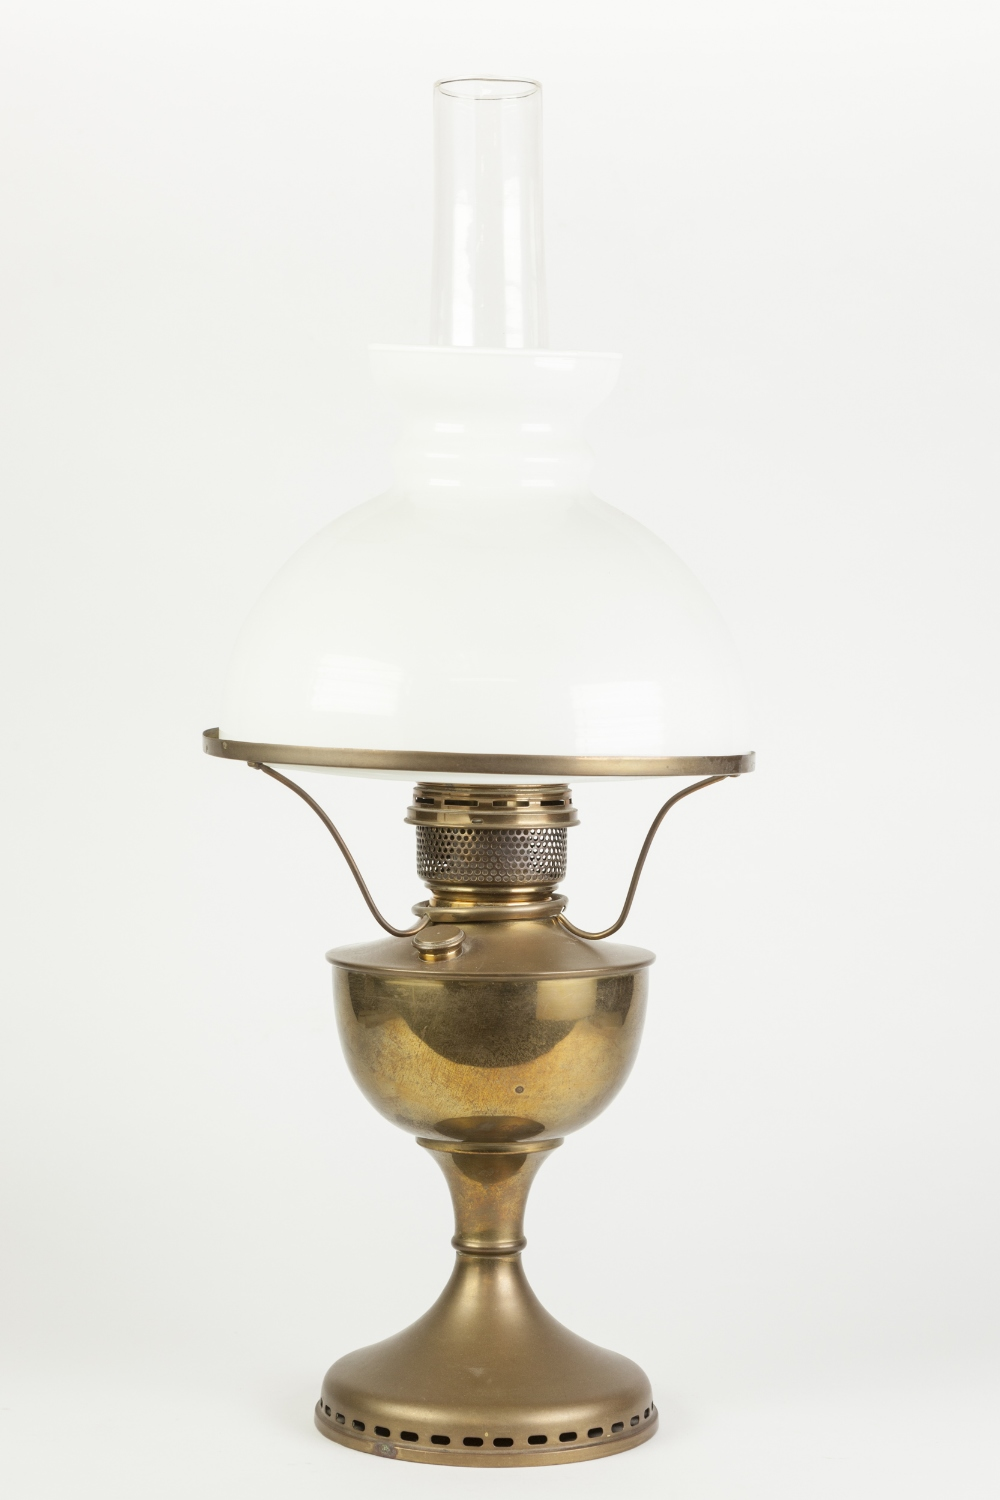 Lot 158 - BRASS AND WHITE GLASS OIL TABLE LAMP, of typical form with domed shade and clear glass chimney,